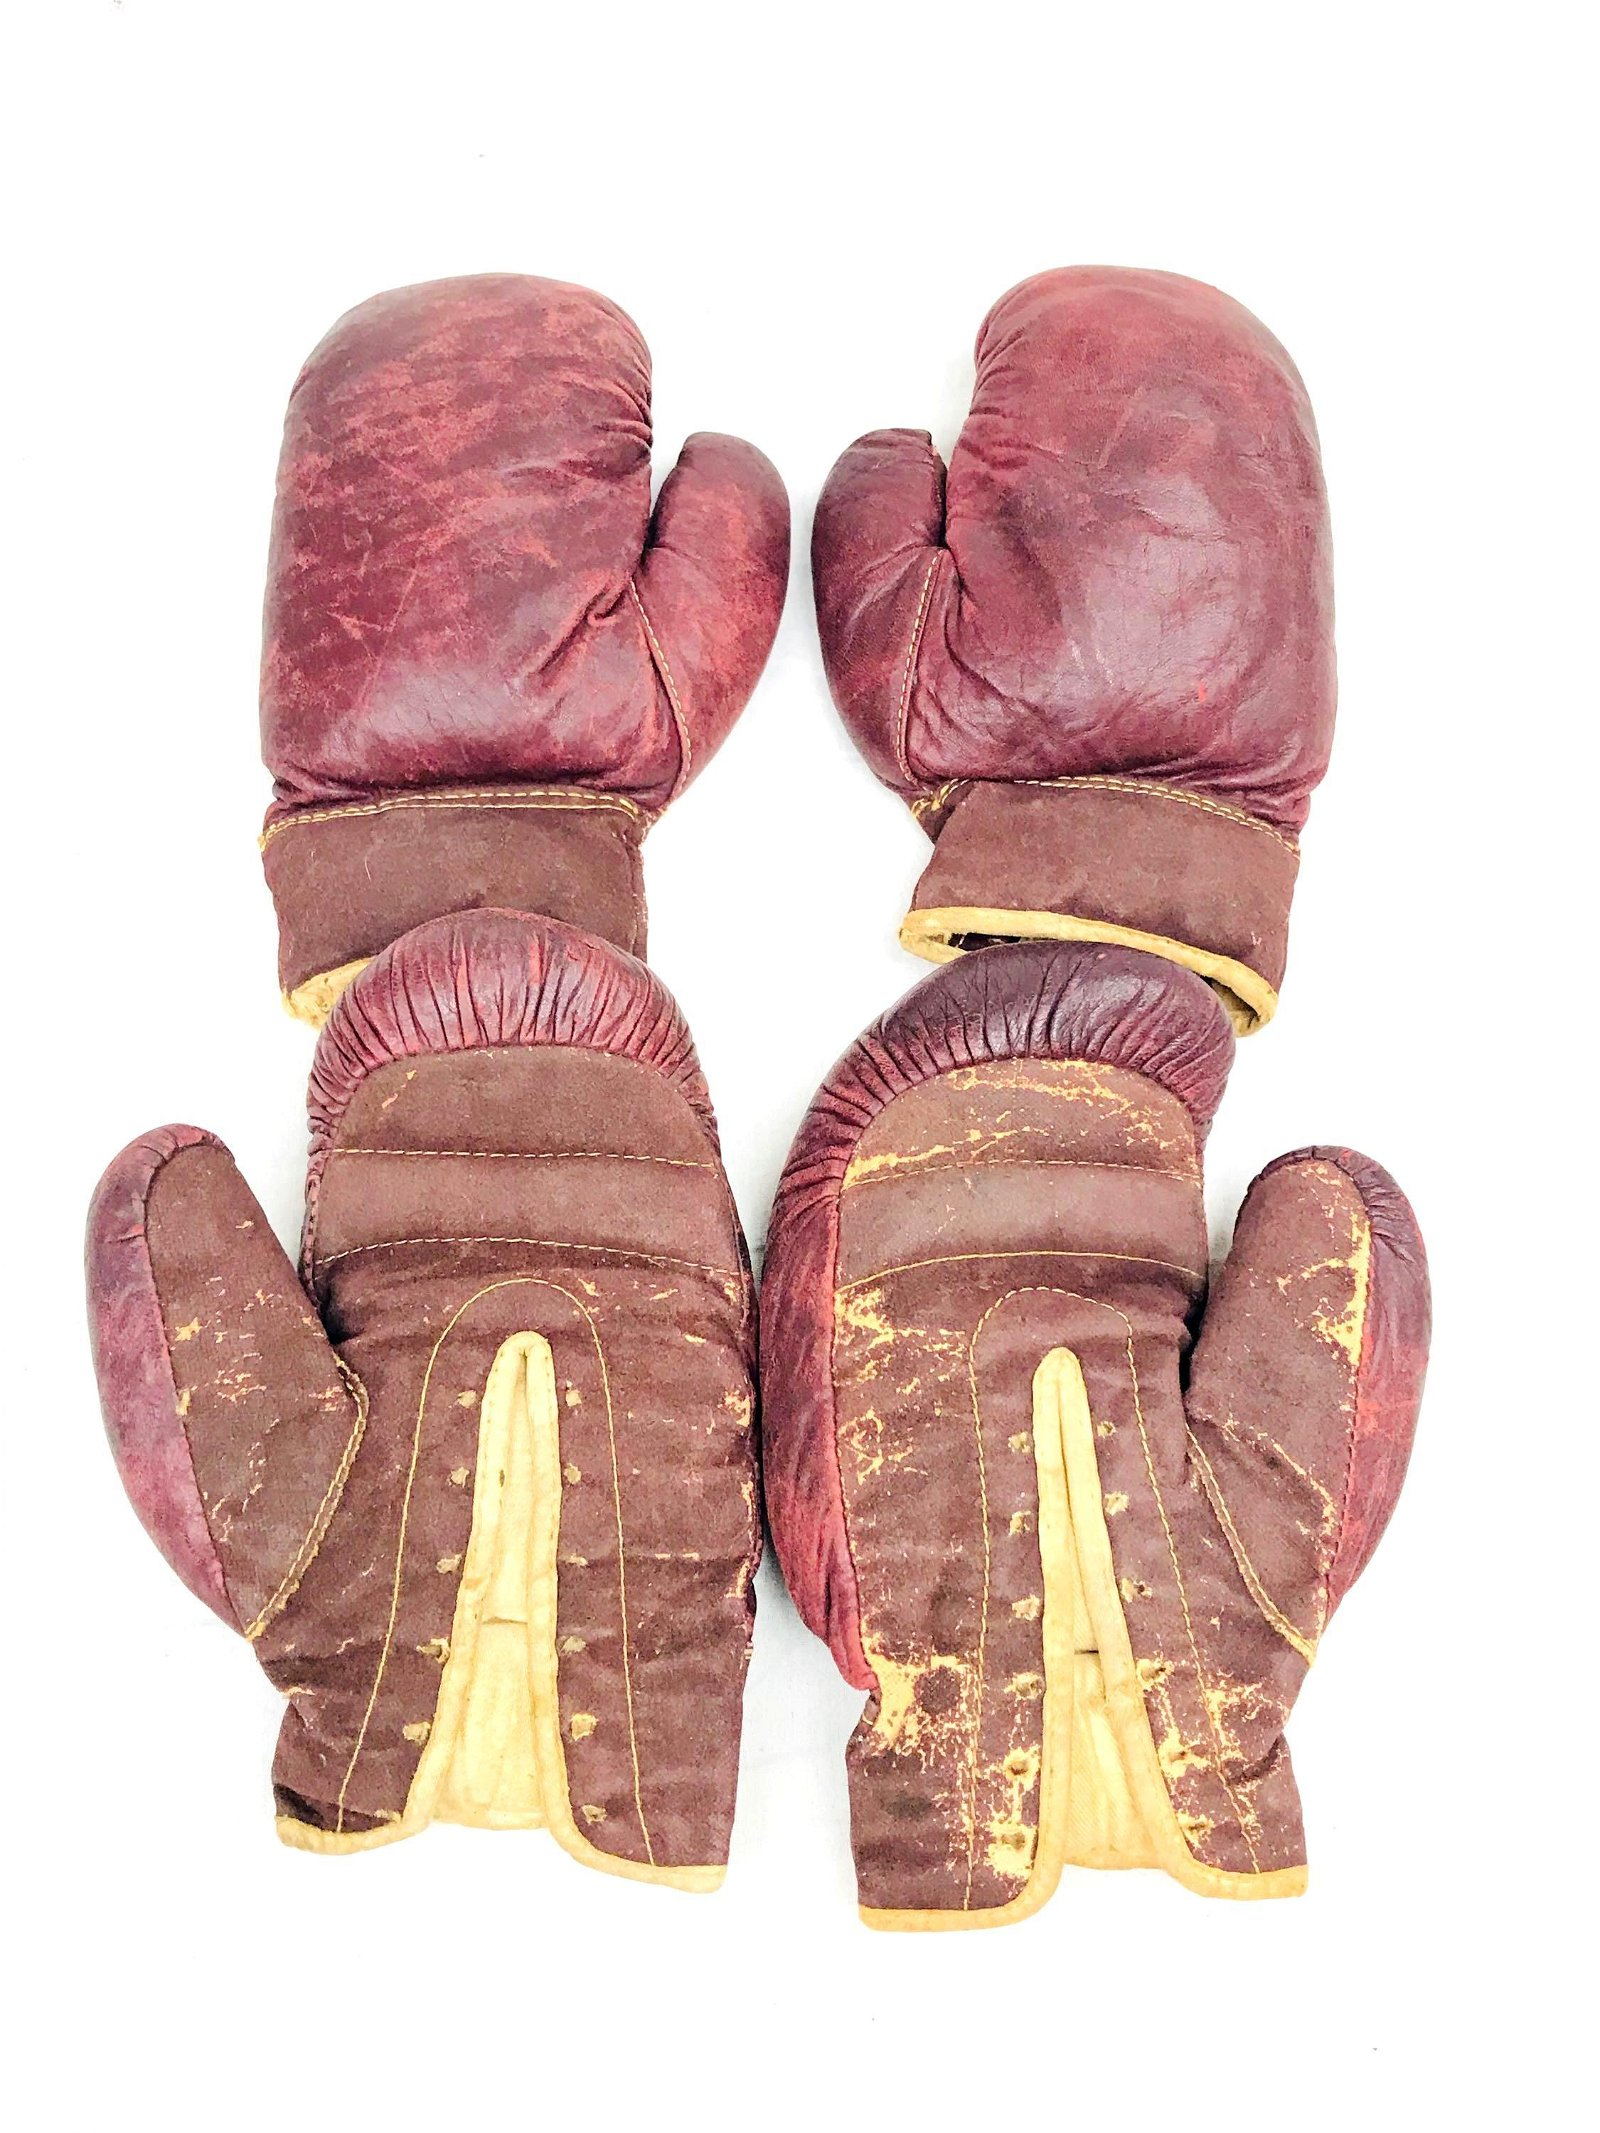 2 Vintage Pairs of Leather JC Higgins Youth Boxing